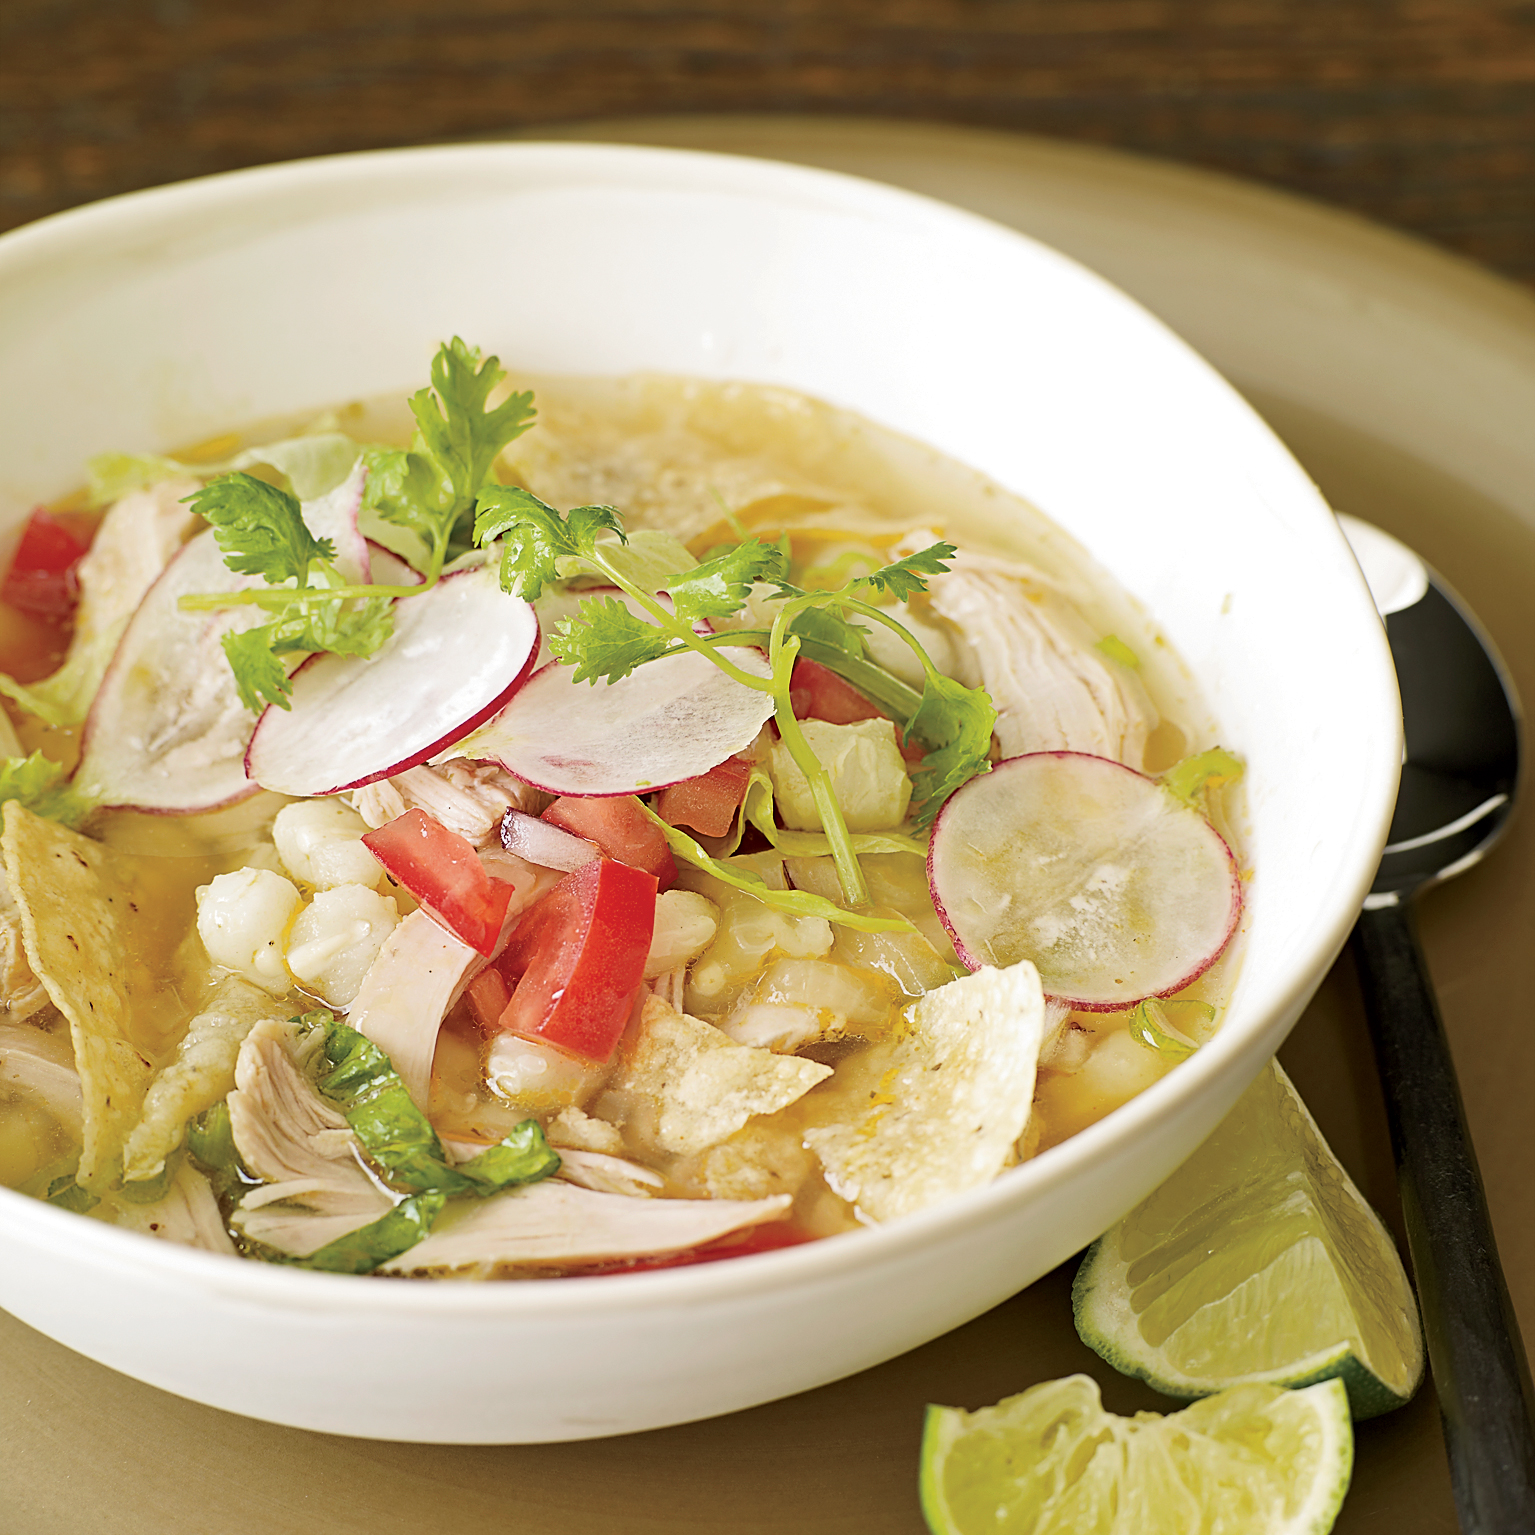 201011-r-chicken-posole.jpg